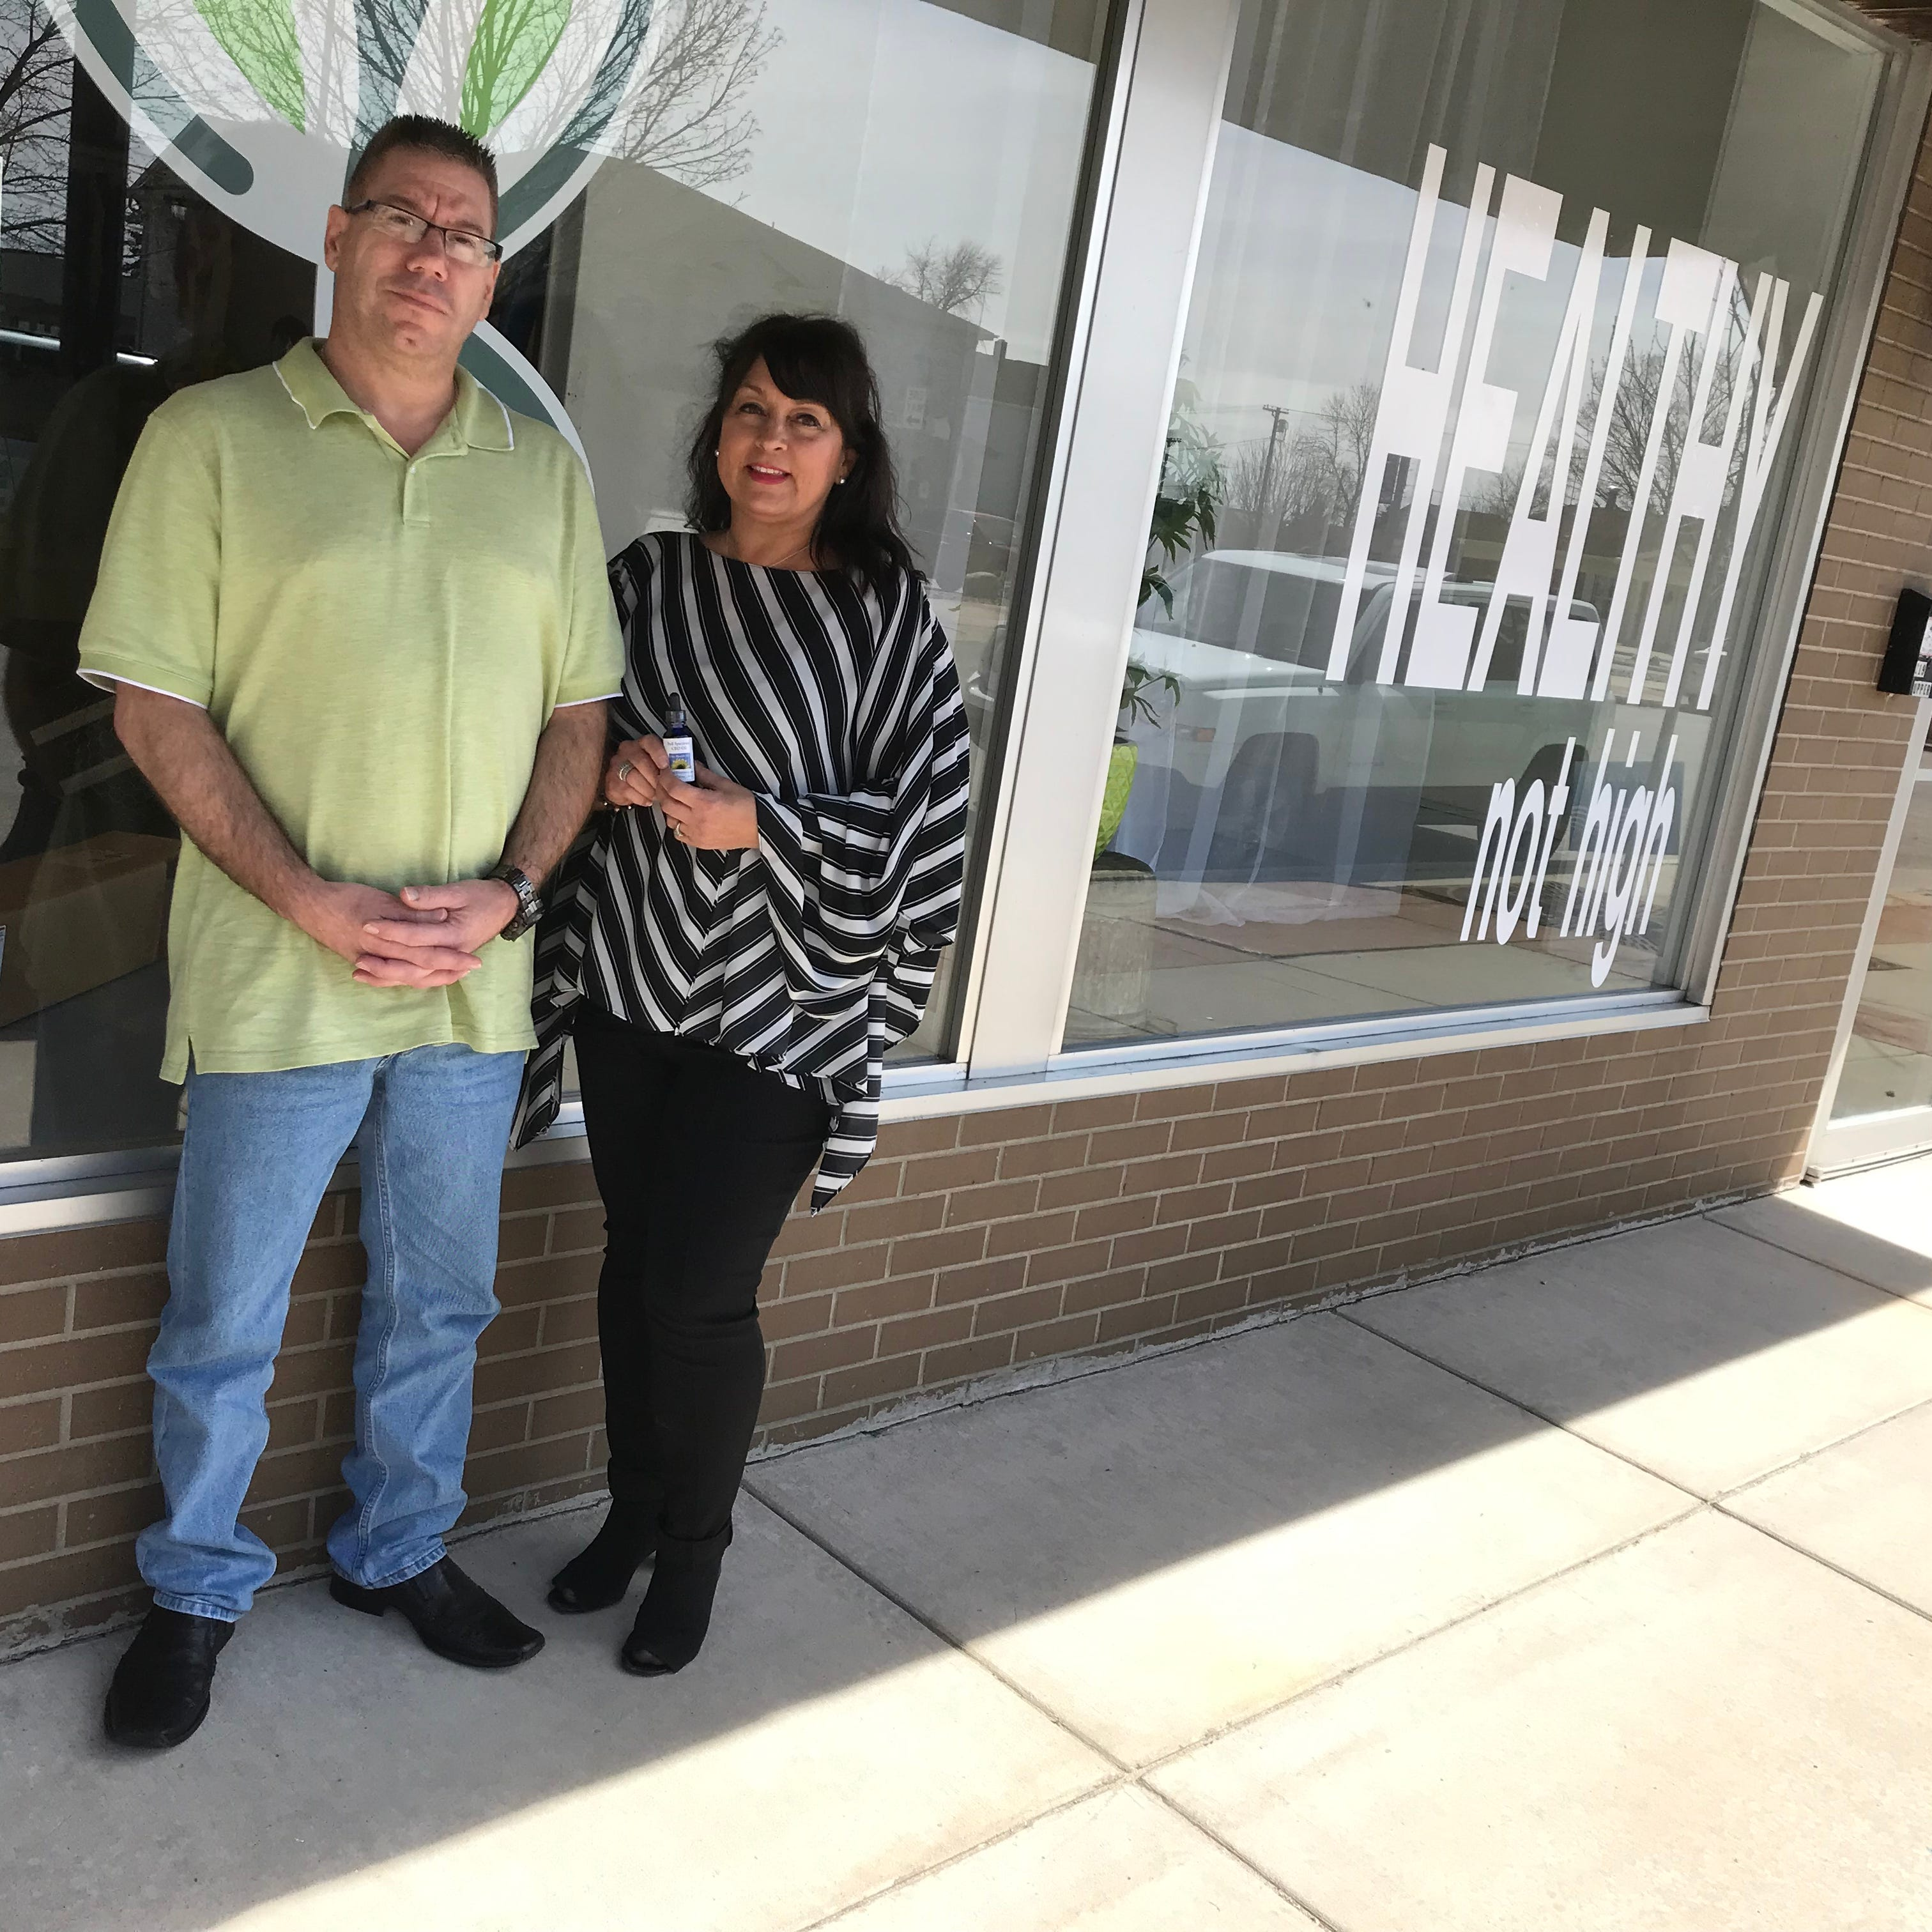 CBD oil shop One Health Wisconsin opens in Algoma